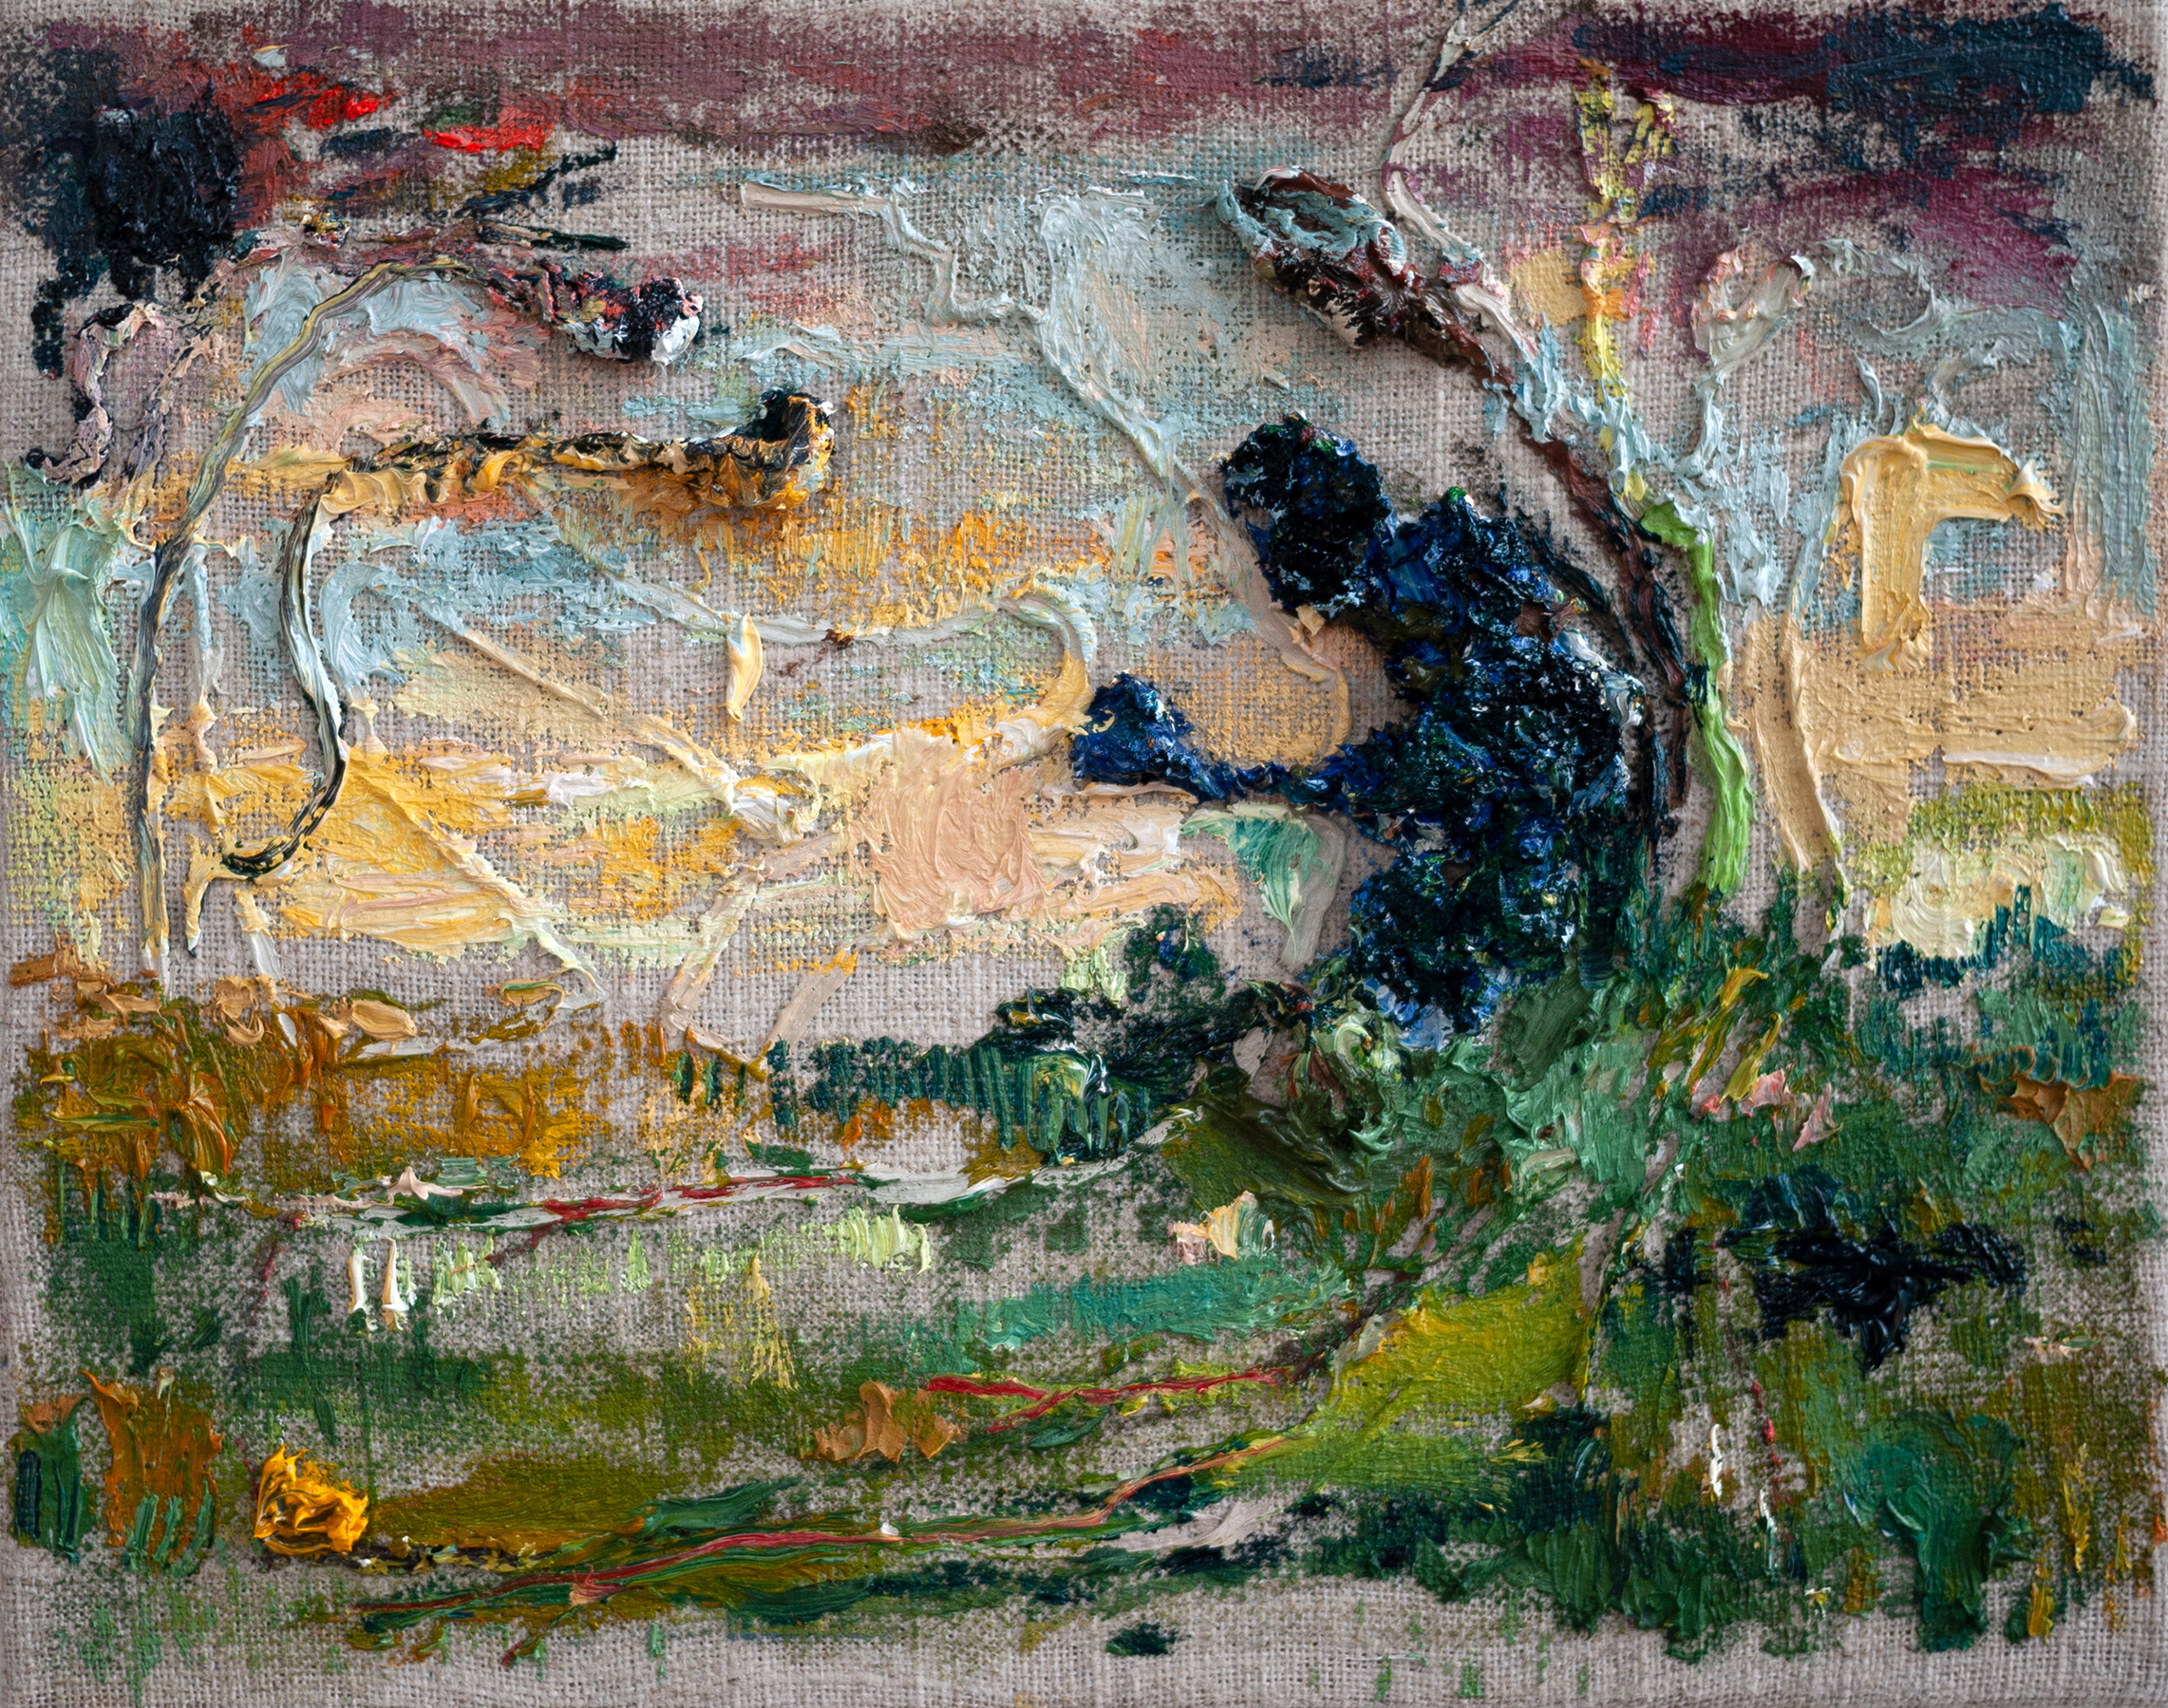 Primitive figure in abstracted landscape